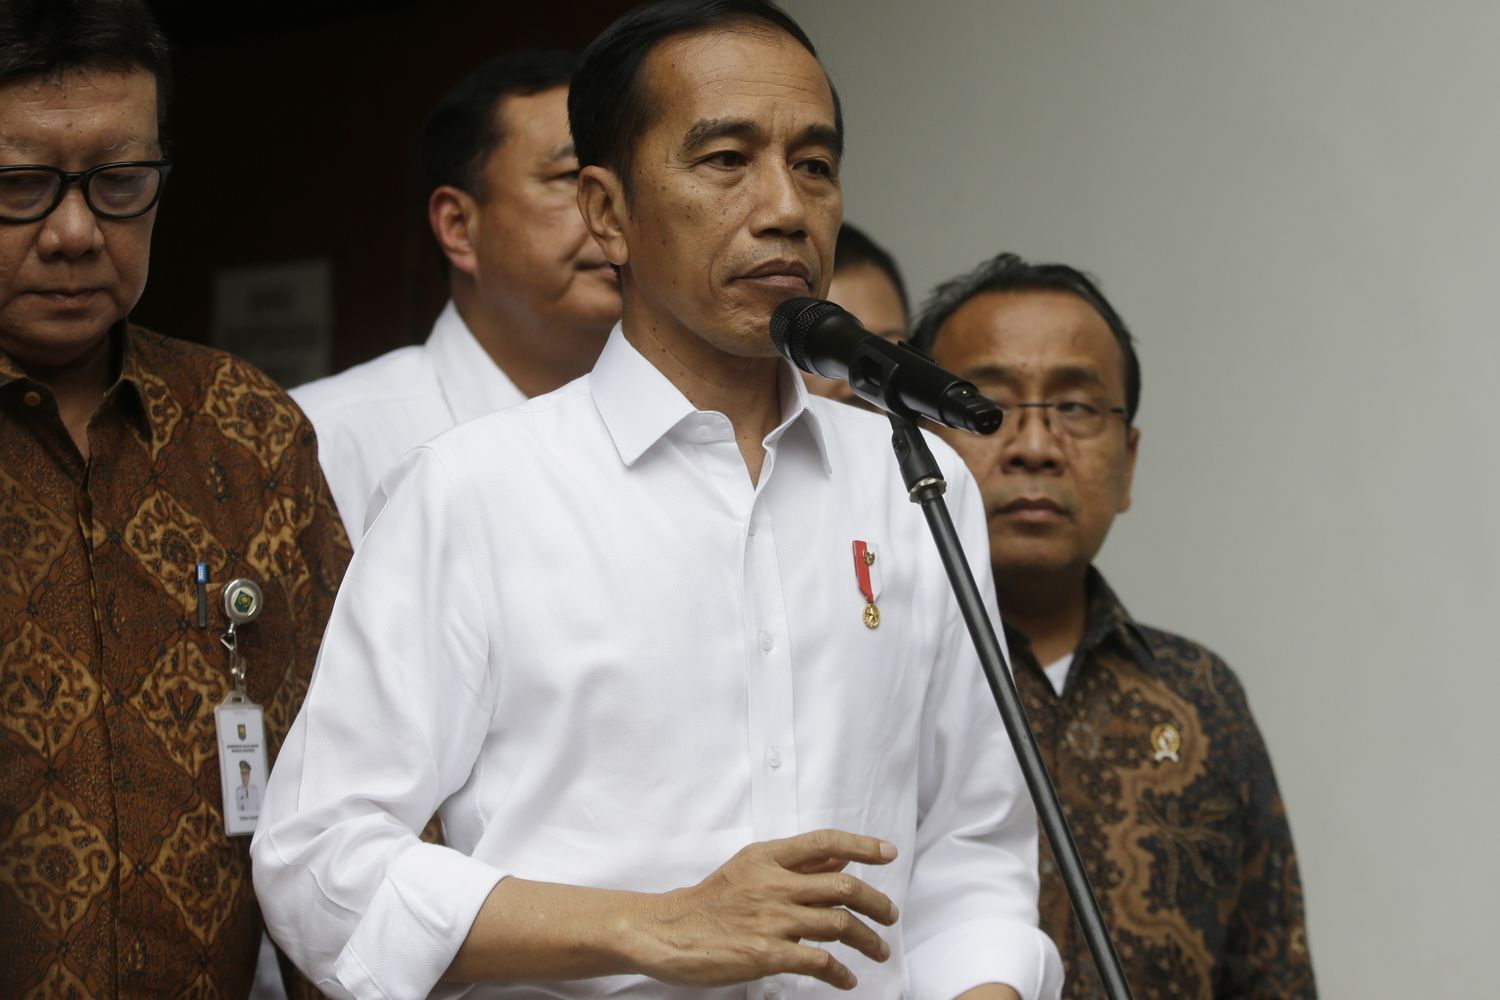 Indonesian President Joko Widodo (centre) speaks to journalists after visiting Coordinating Minister for Politics, Law and Security Wiranto who was wounded in a knife attack, at a hospital in Jakarta on Thursday. (AP photo)